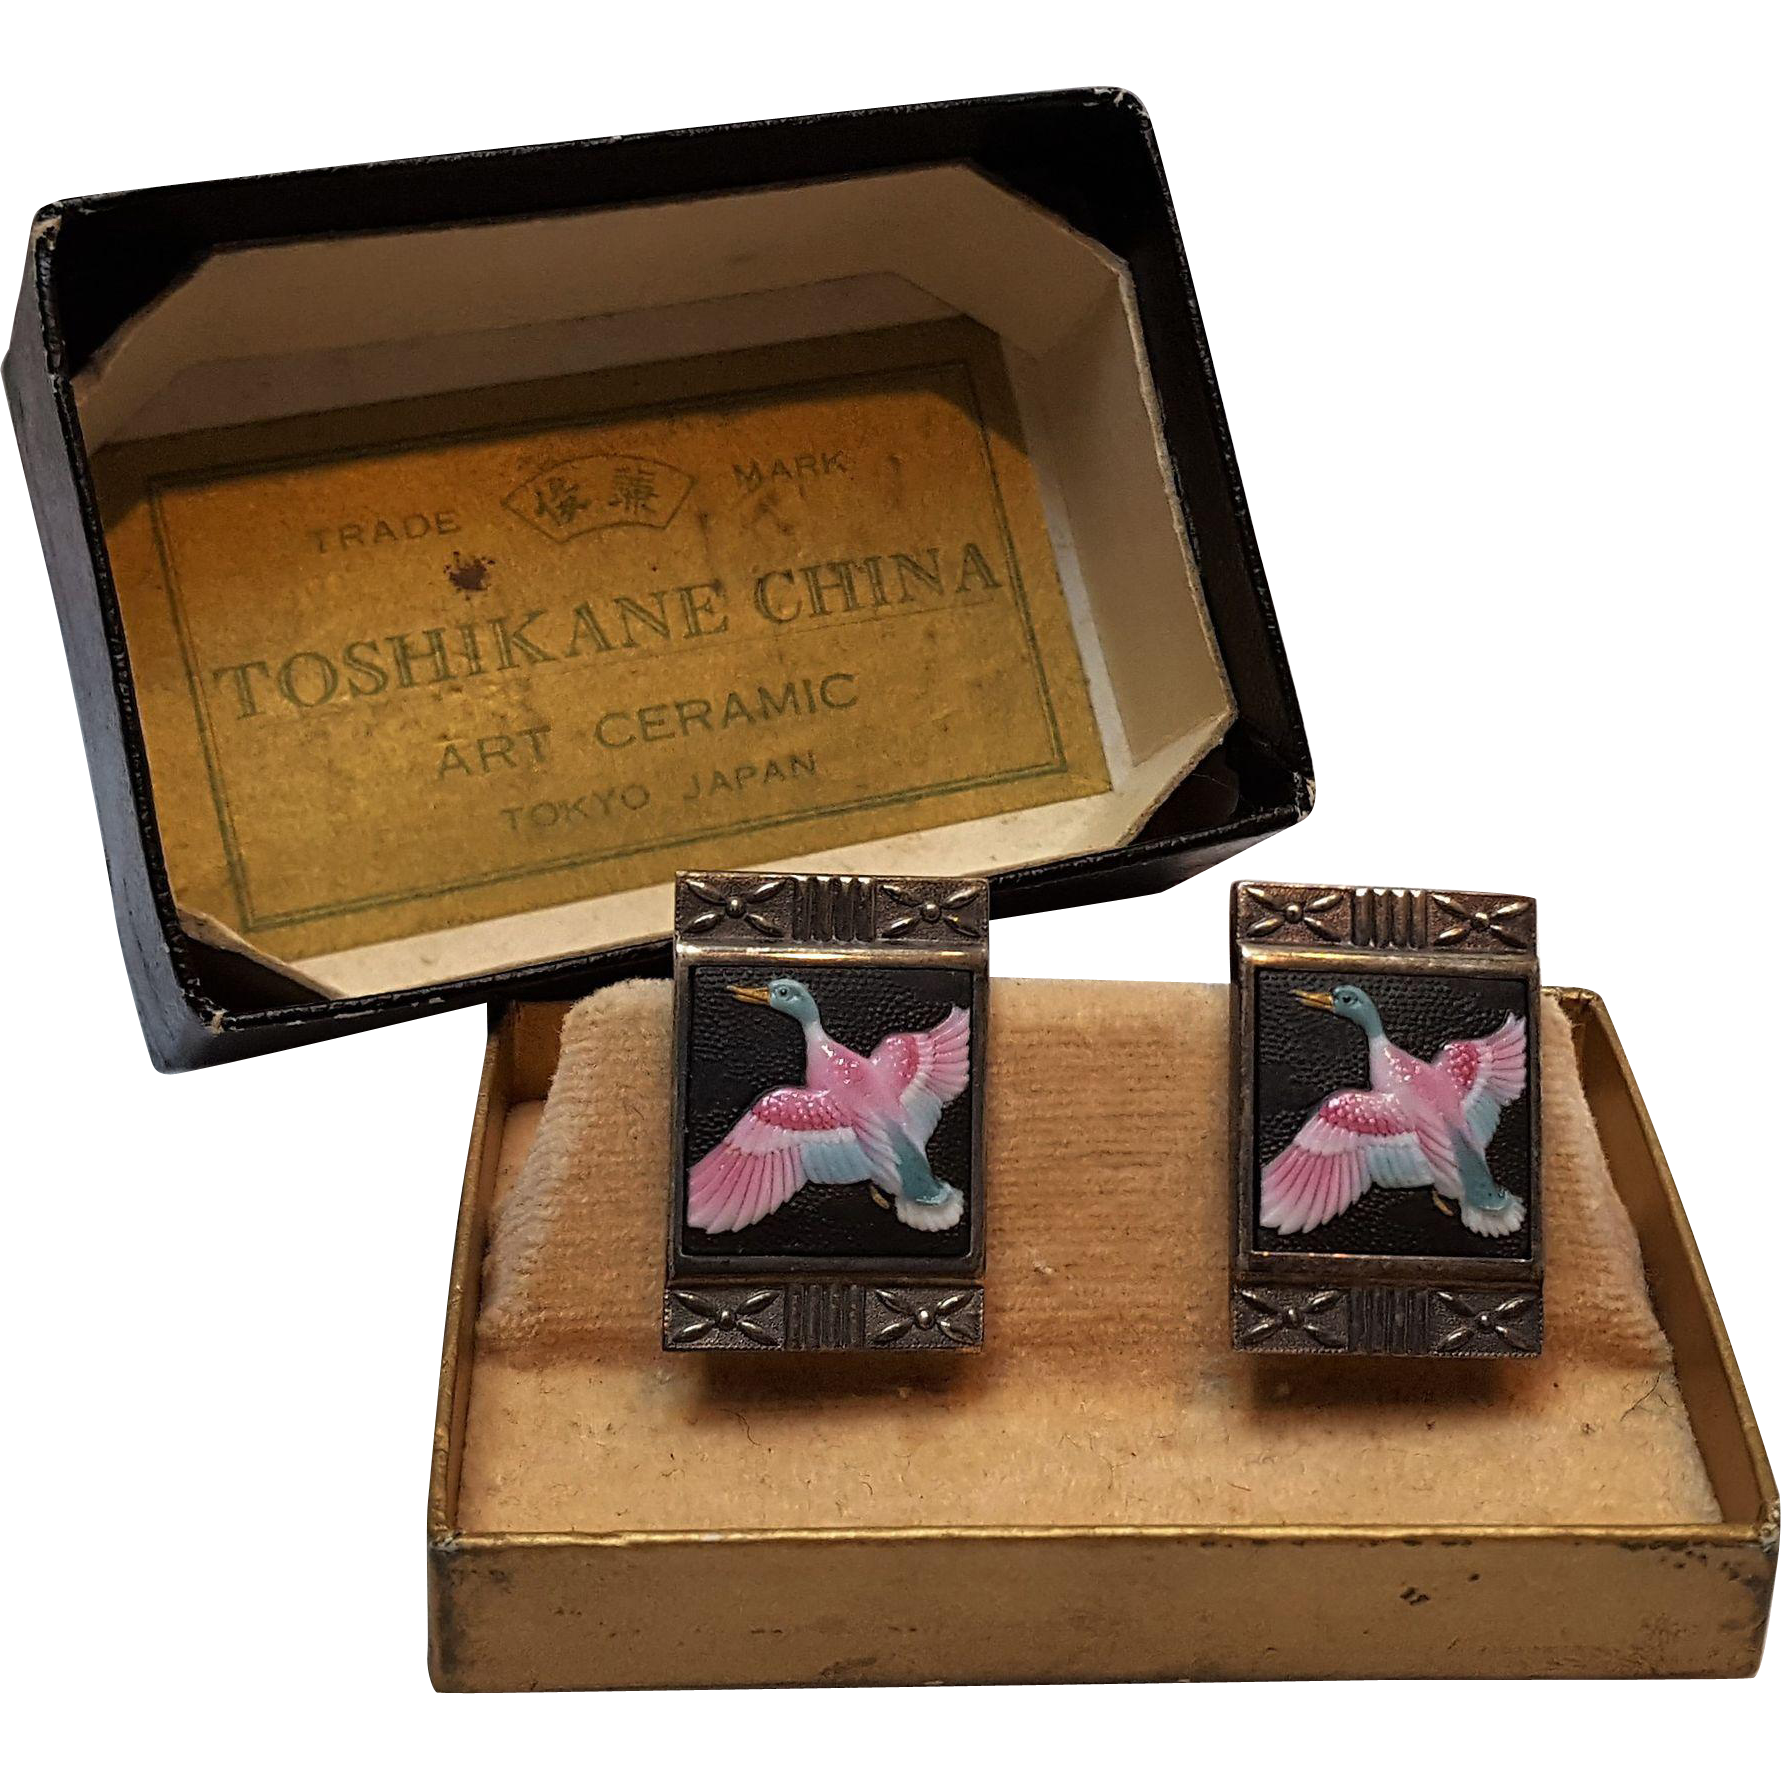 Toshikane silver enamel porcelain earrings ducks original box